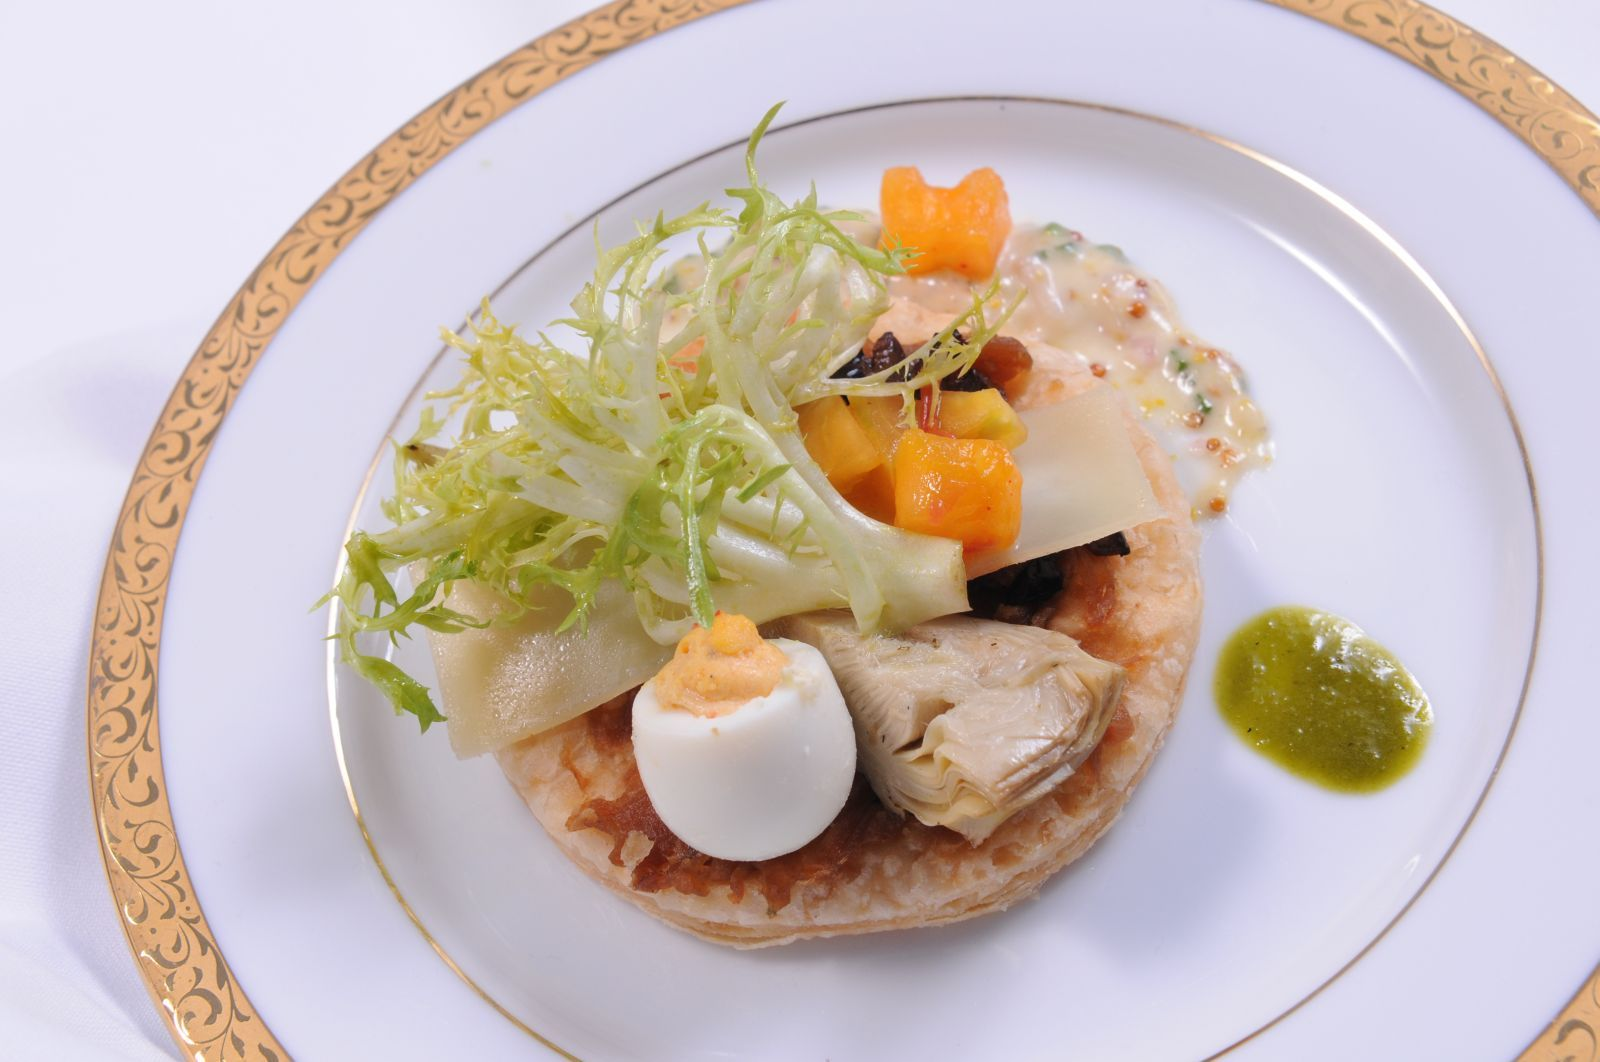 Artichoke Pissaladiere #culinarycapers #food #catering http://www.culinarycapers.com/ Photo: John C. Watson